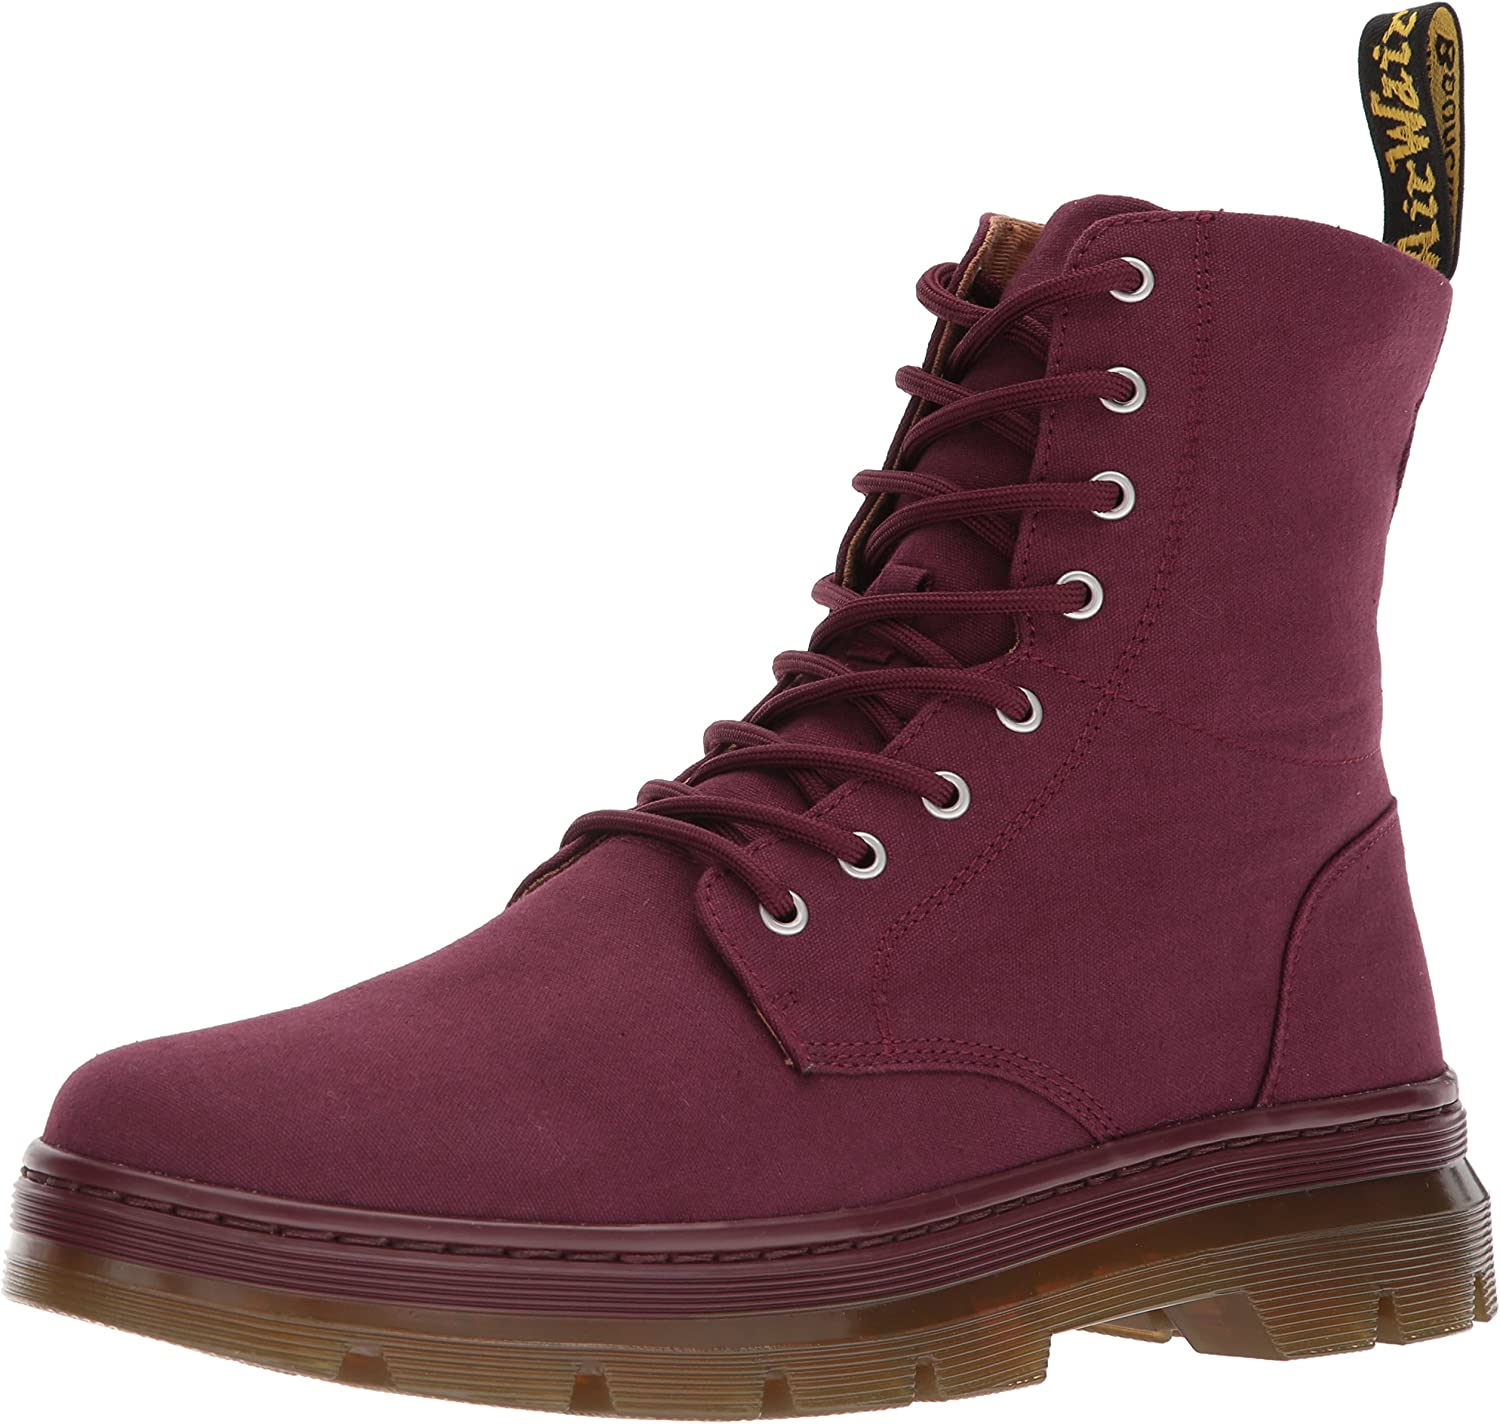 Dr. Martens Combs Canvas Fashion Boot